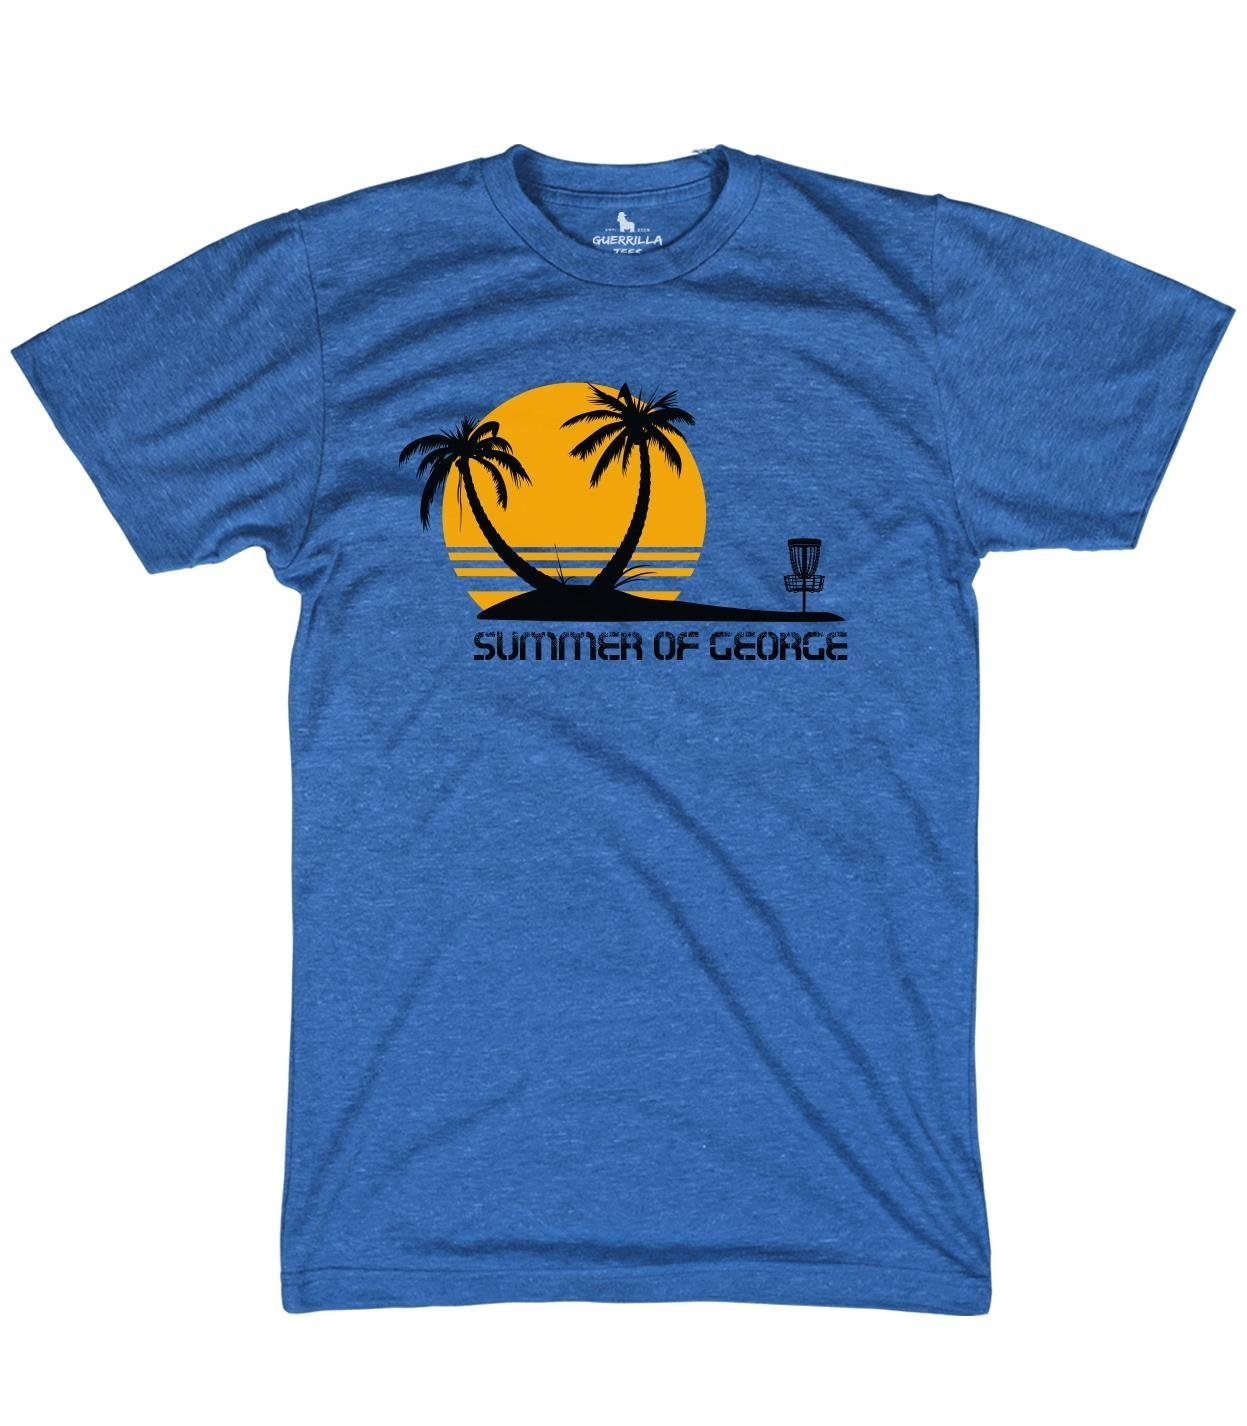 Guerrilla Tees Summer of George Shirt Funny disc Golf Tshirt Funny tees, Blue, Small